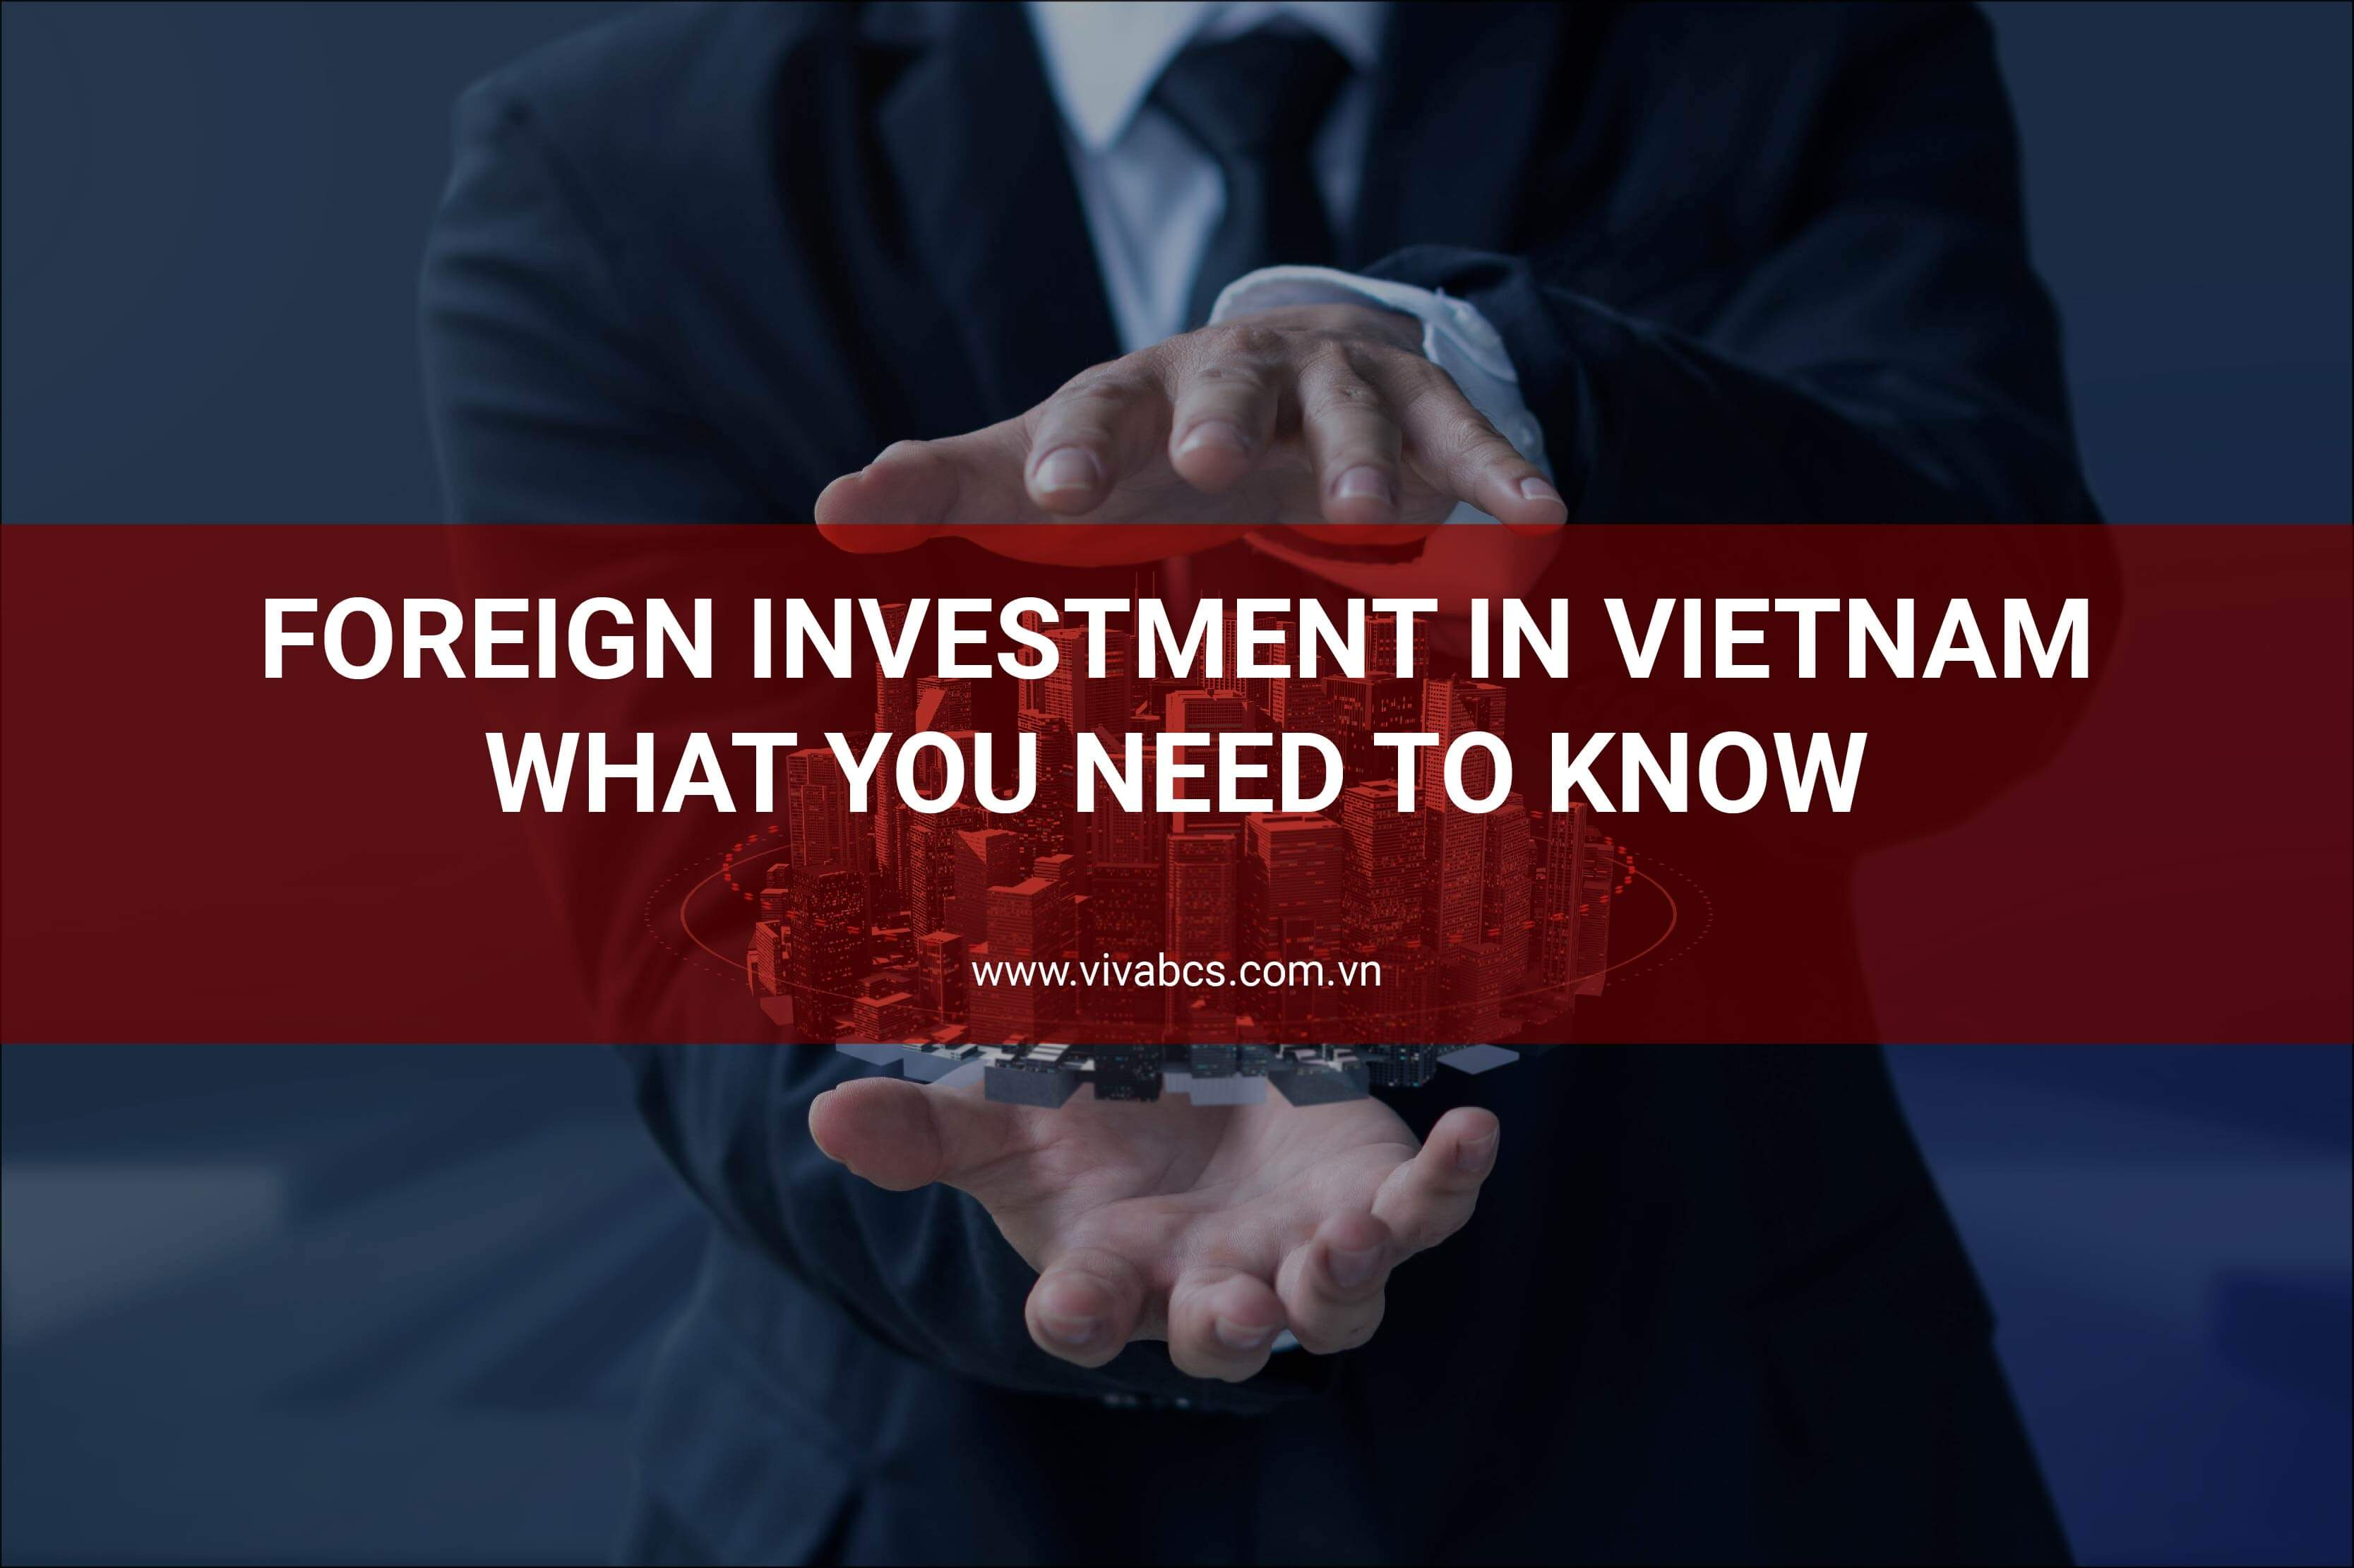 Foreign Investment In Vietnam - What You Need To Know